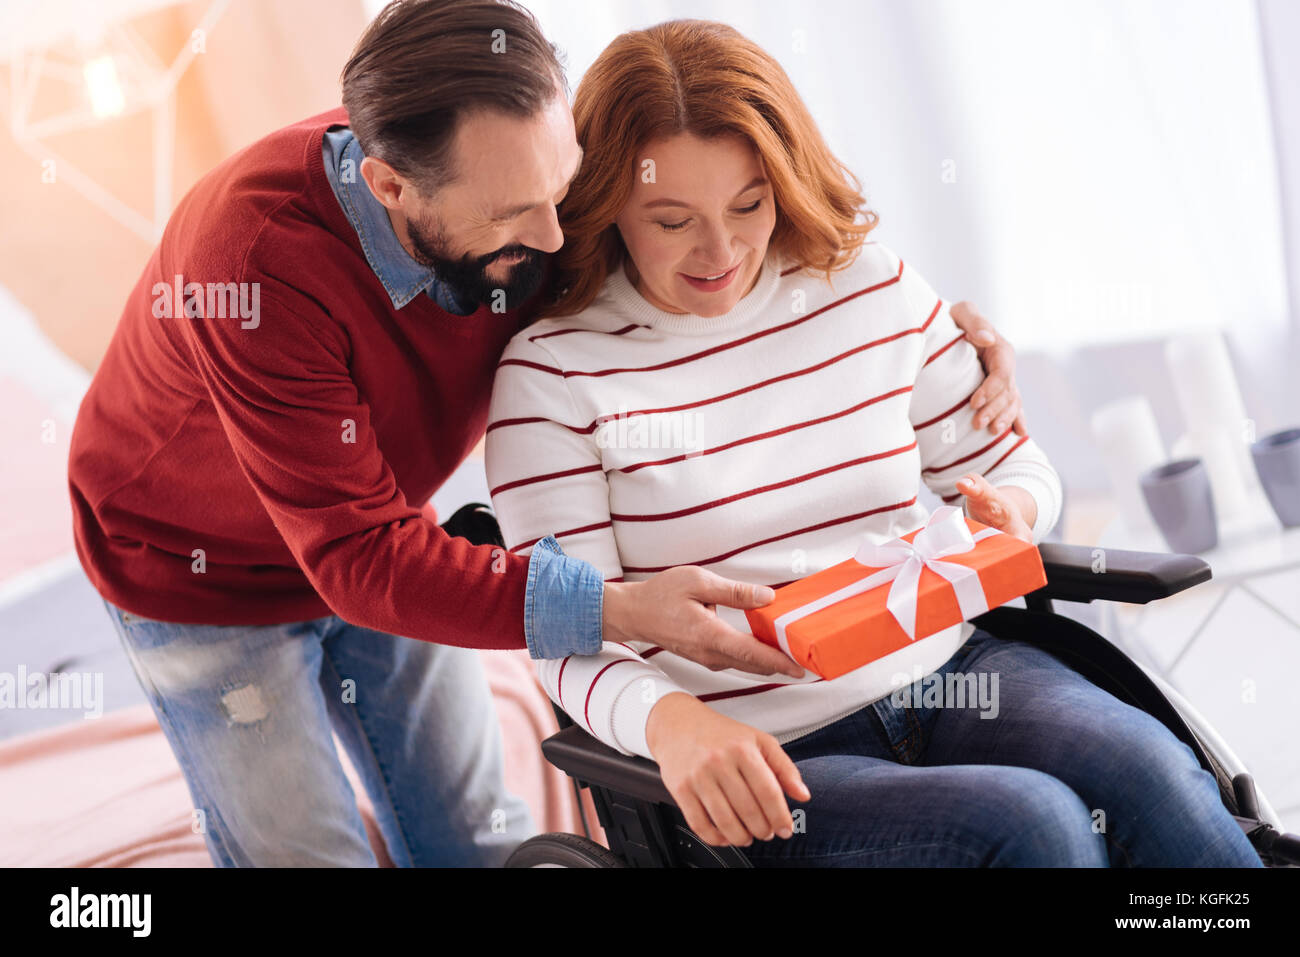 Smiling man giving a present to a crippled woman - Stock Image